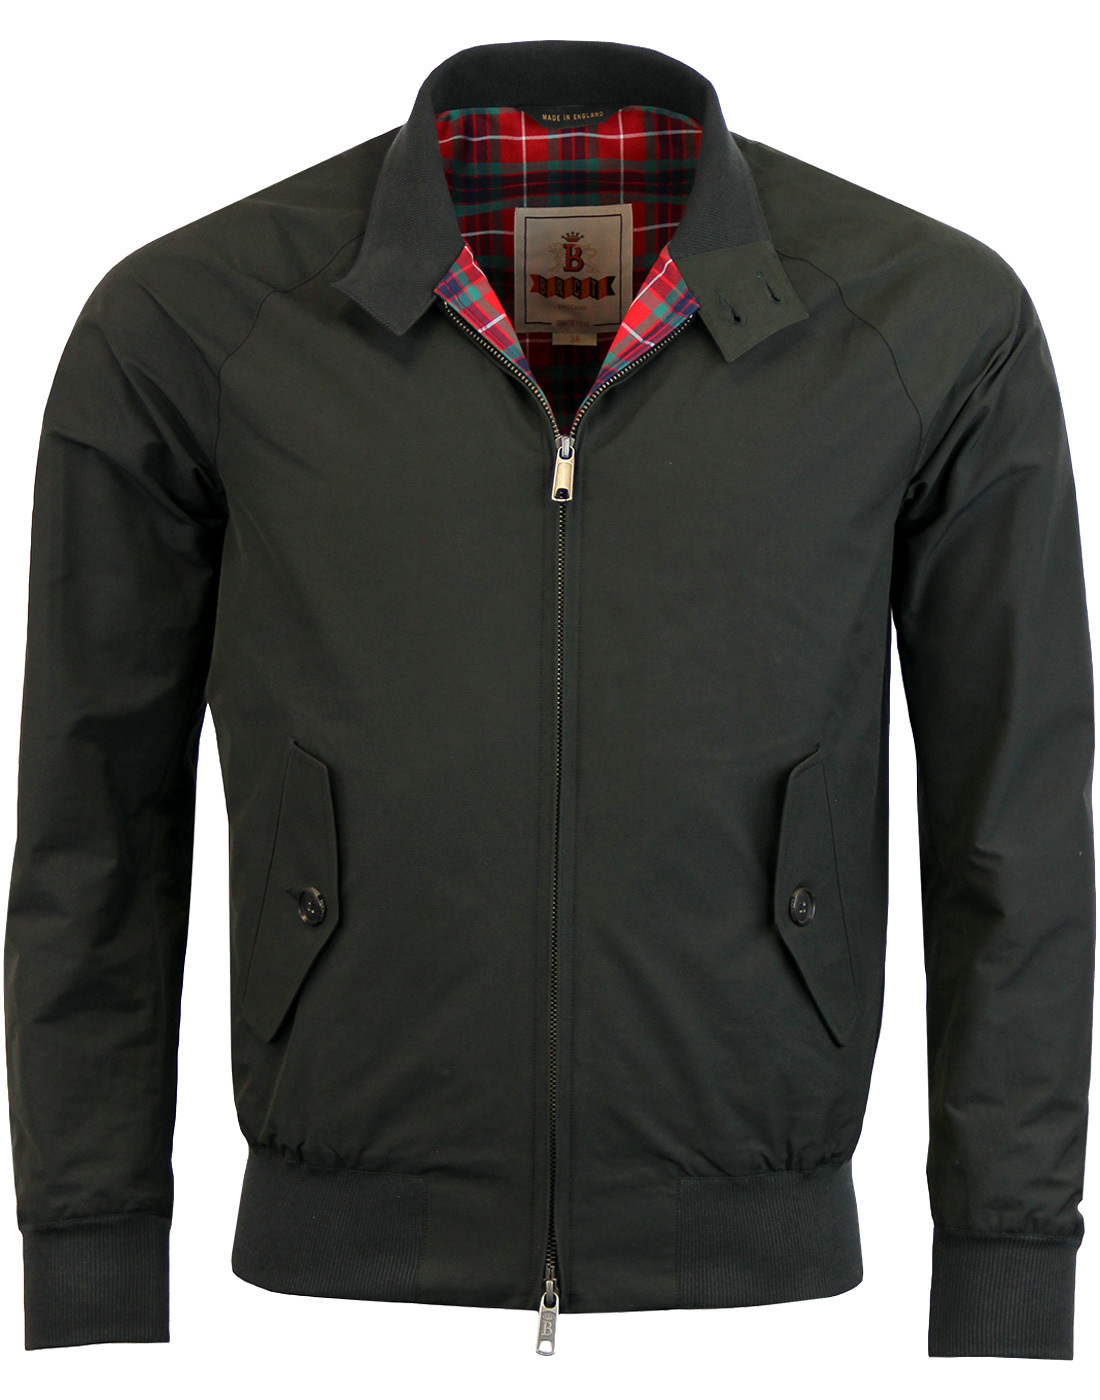 BARACUTA G9 Retro Mod 60s Harrington - Faded Black